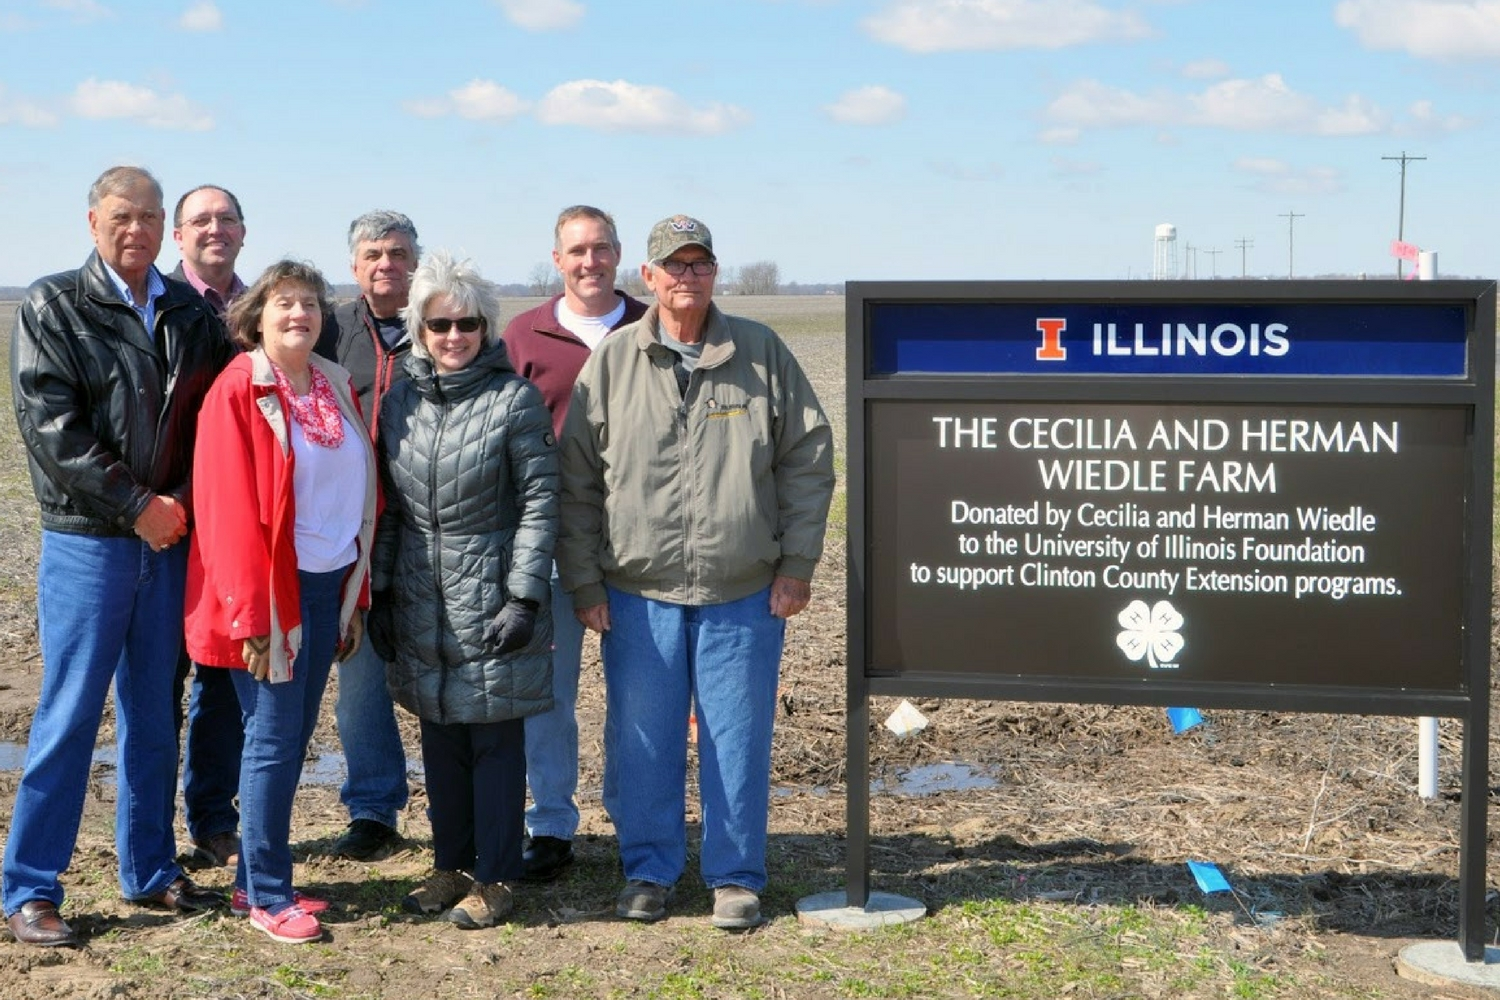 Farmland donated to benefit Clinton County Extension